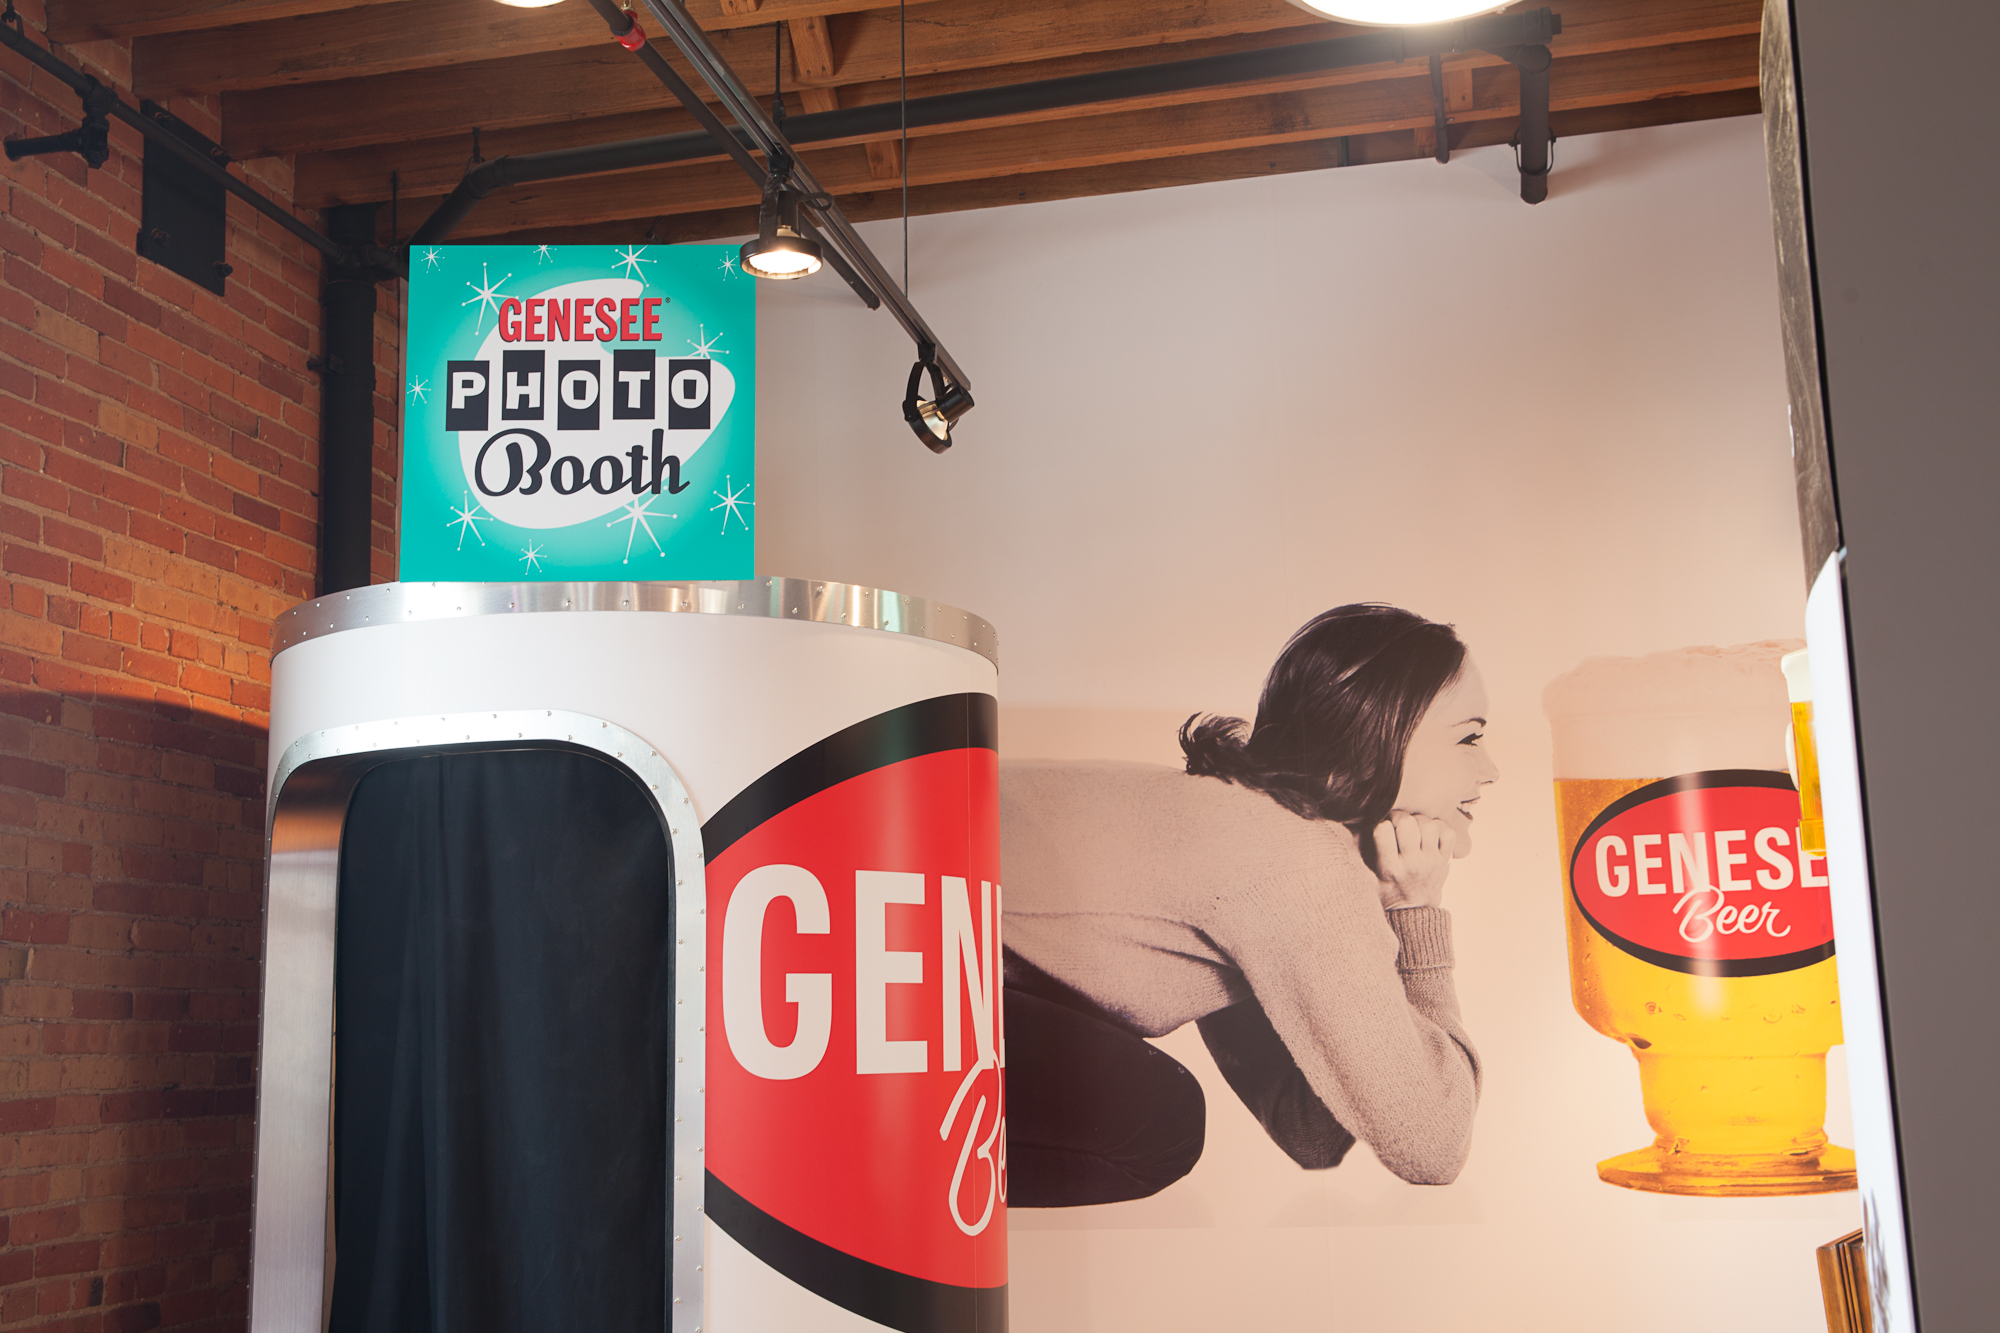 Brew House Exhibit - Beer Can Photobooth